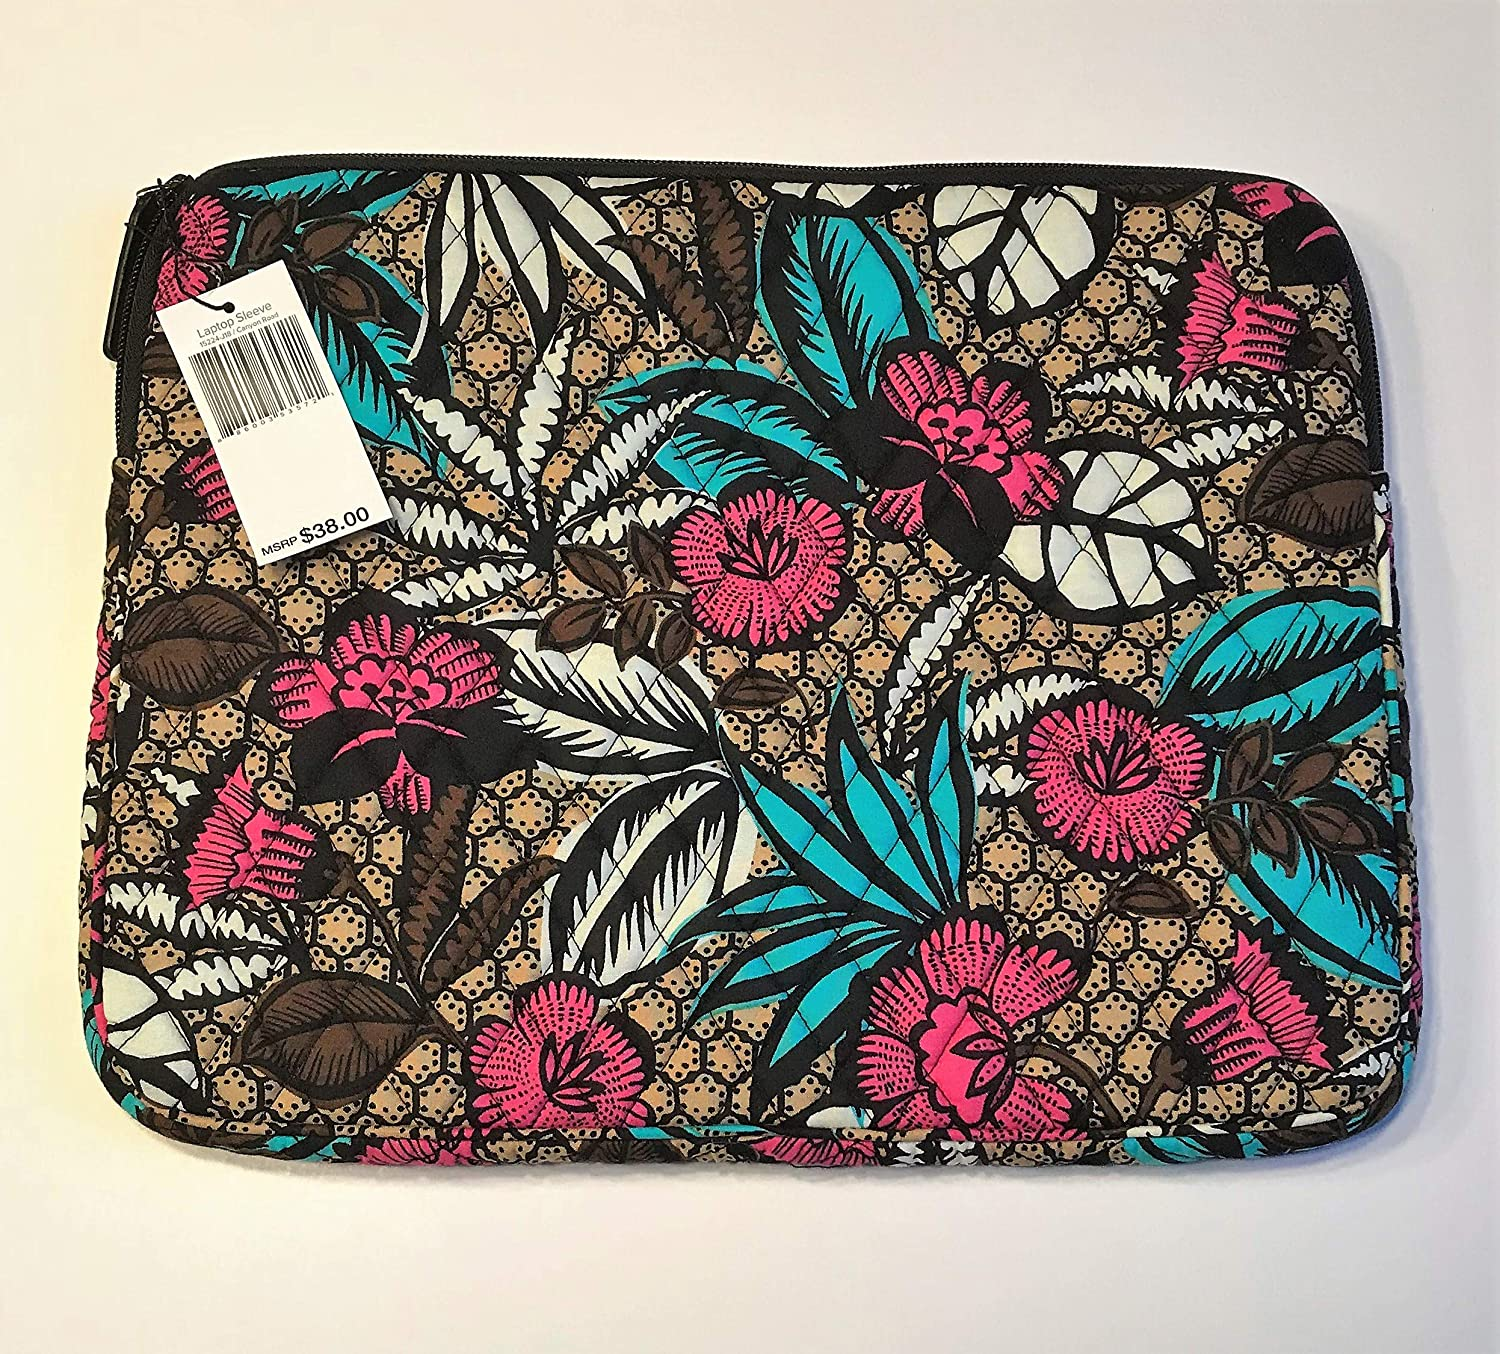 Vera Bradley Laptop Sleeve - Canyon Road